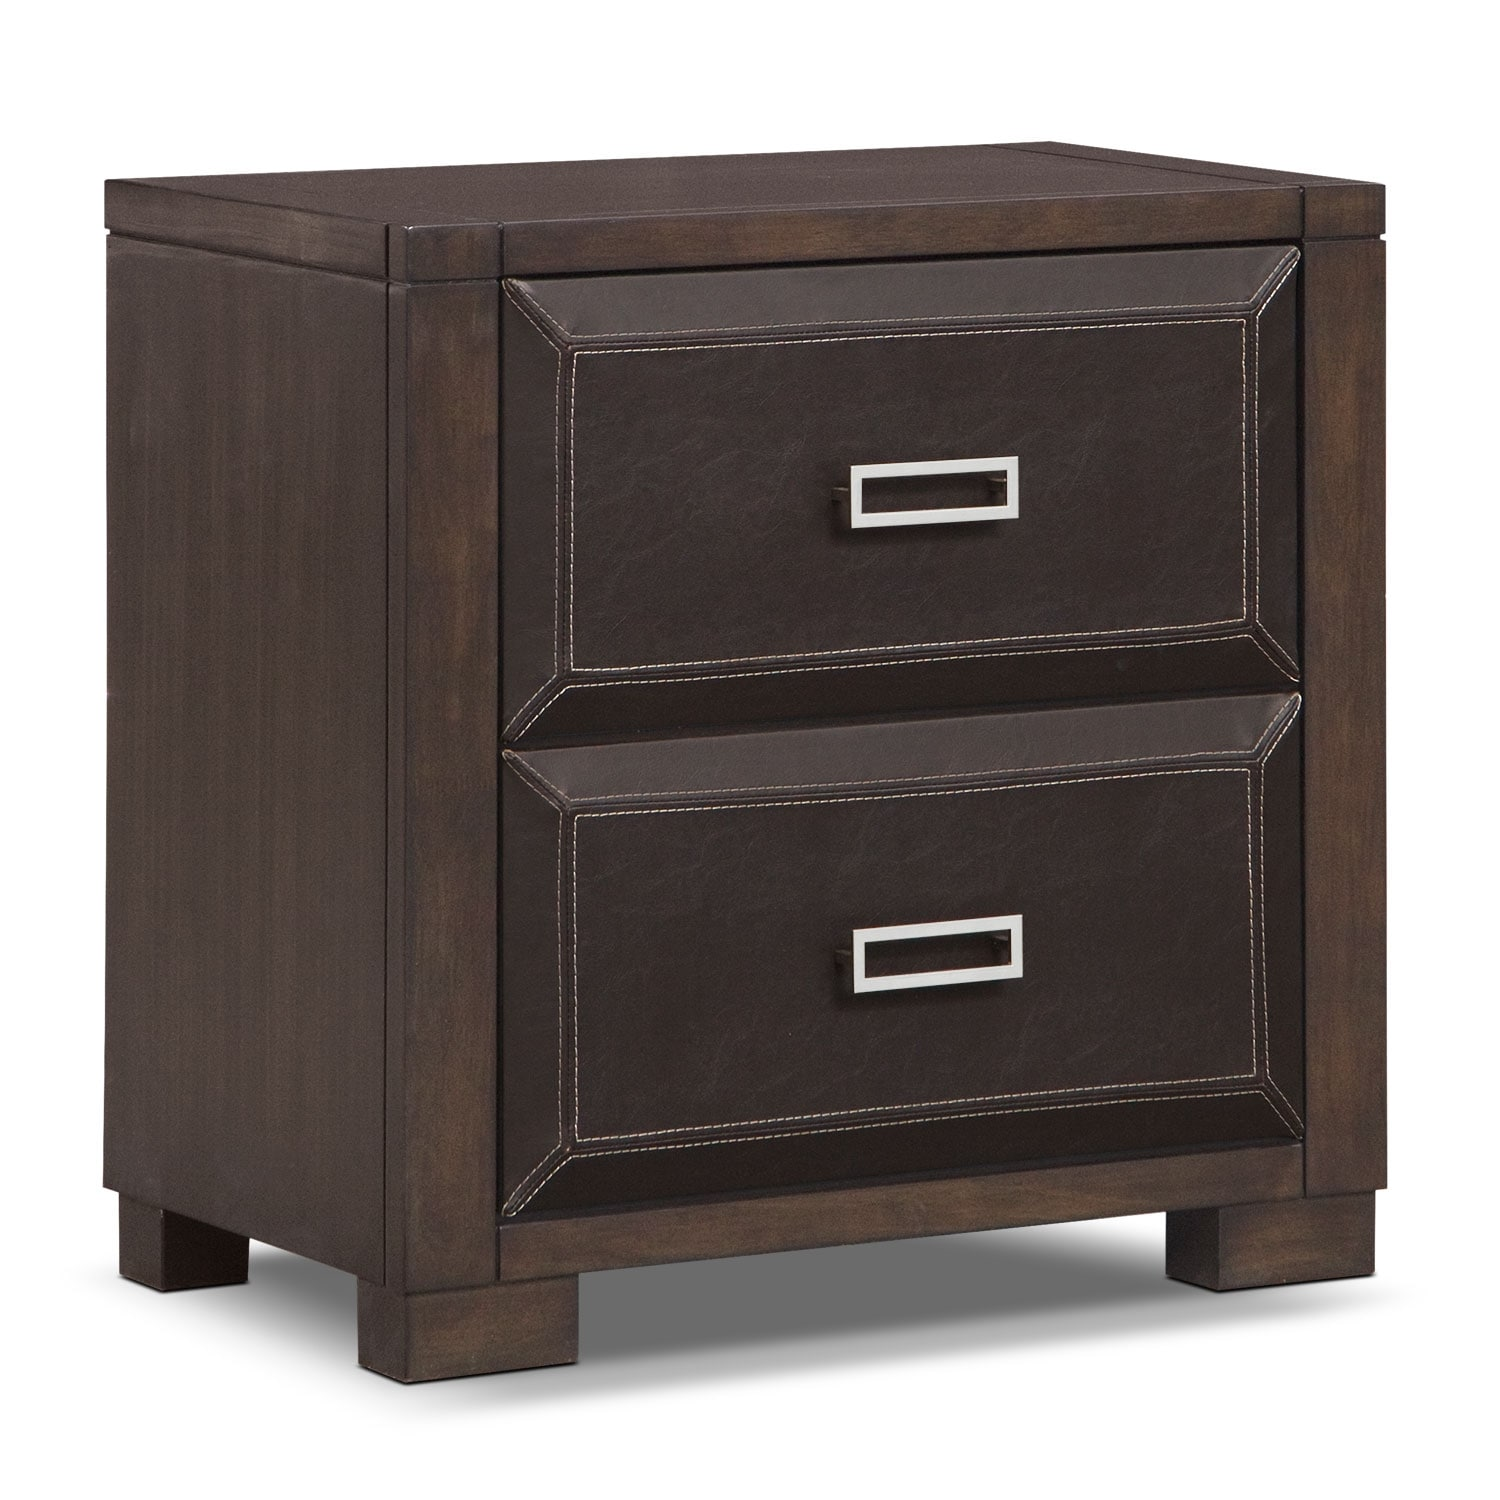 Bedroom Furniture - Mason Nightstand